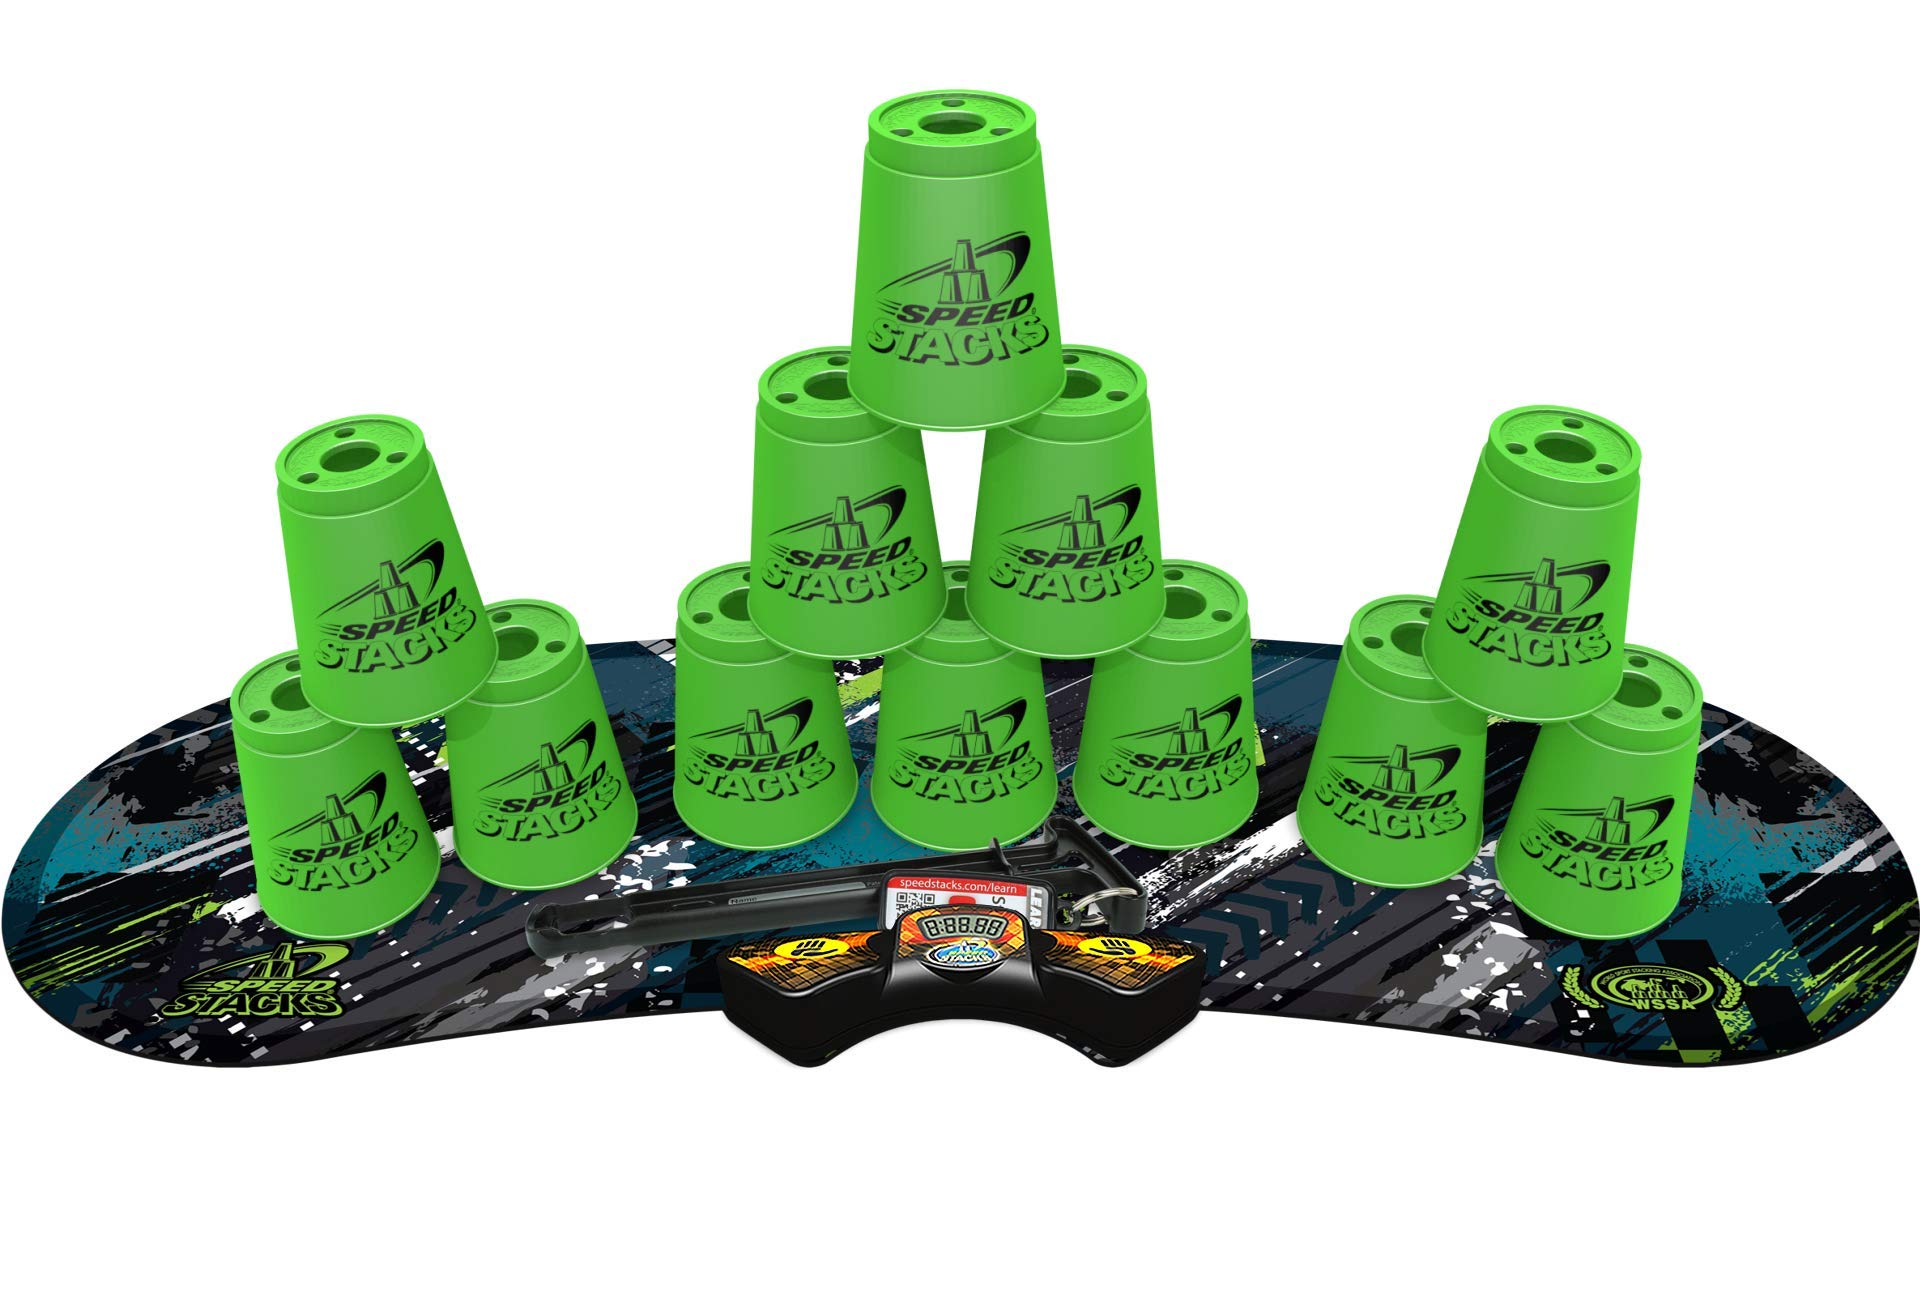 Speed Stacks Competitor - Green & GT Speed